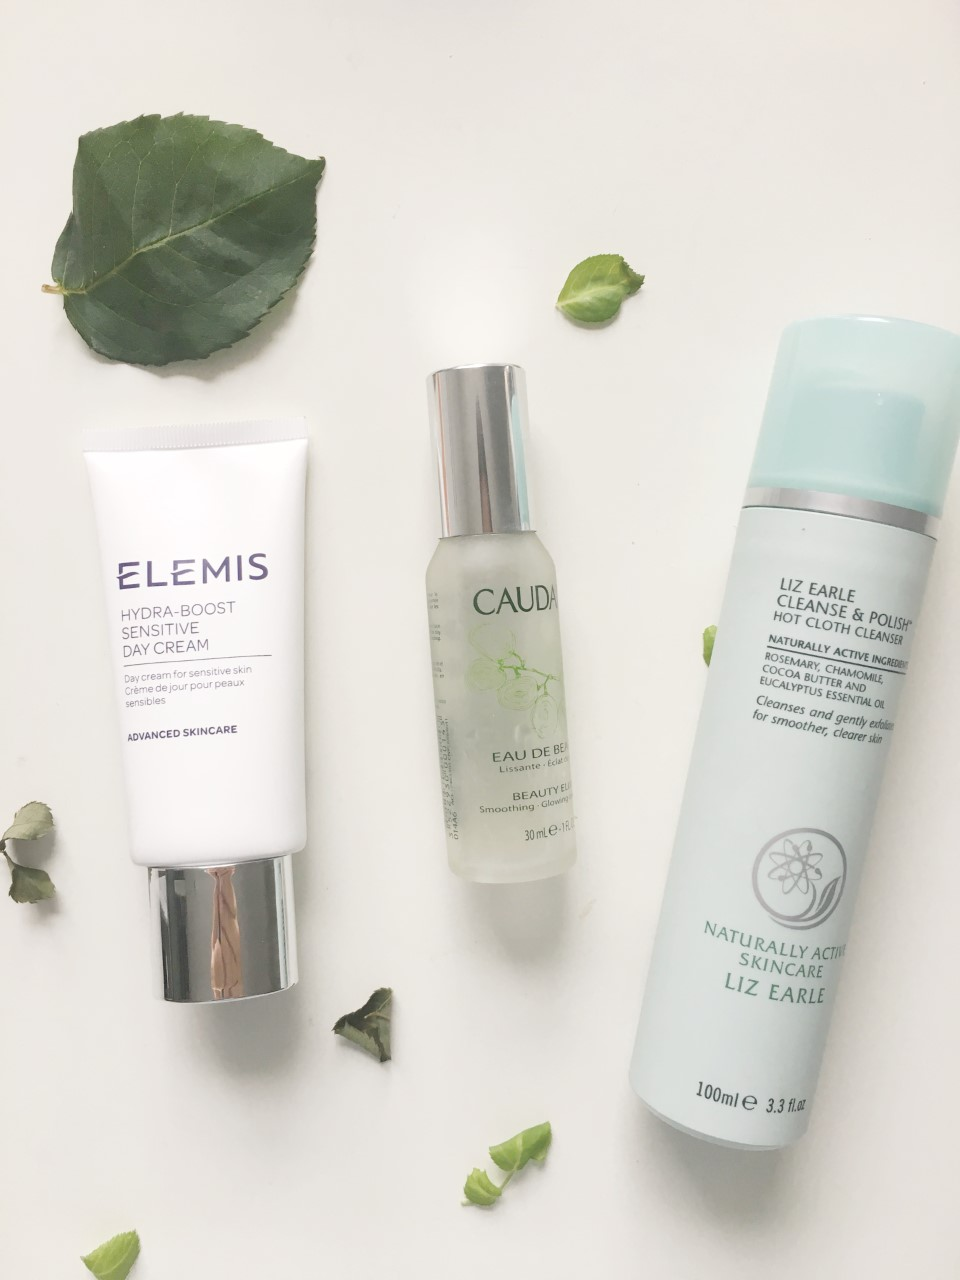 skincare, everyday routine, beauty, blogger, natural, products, space nk, elemis, beauty, skin